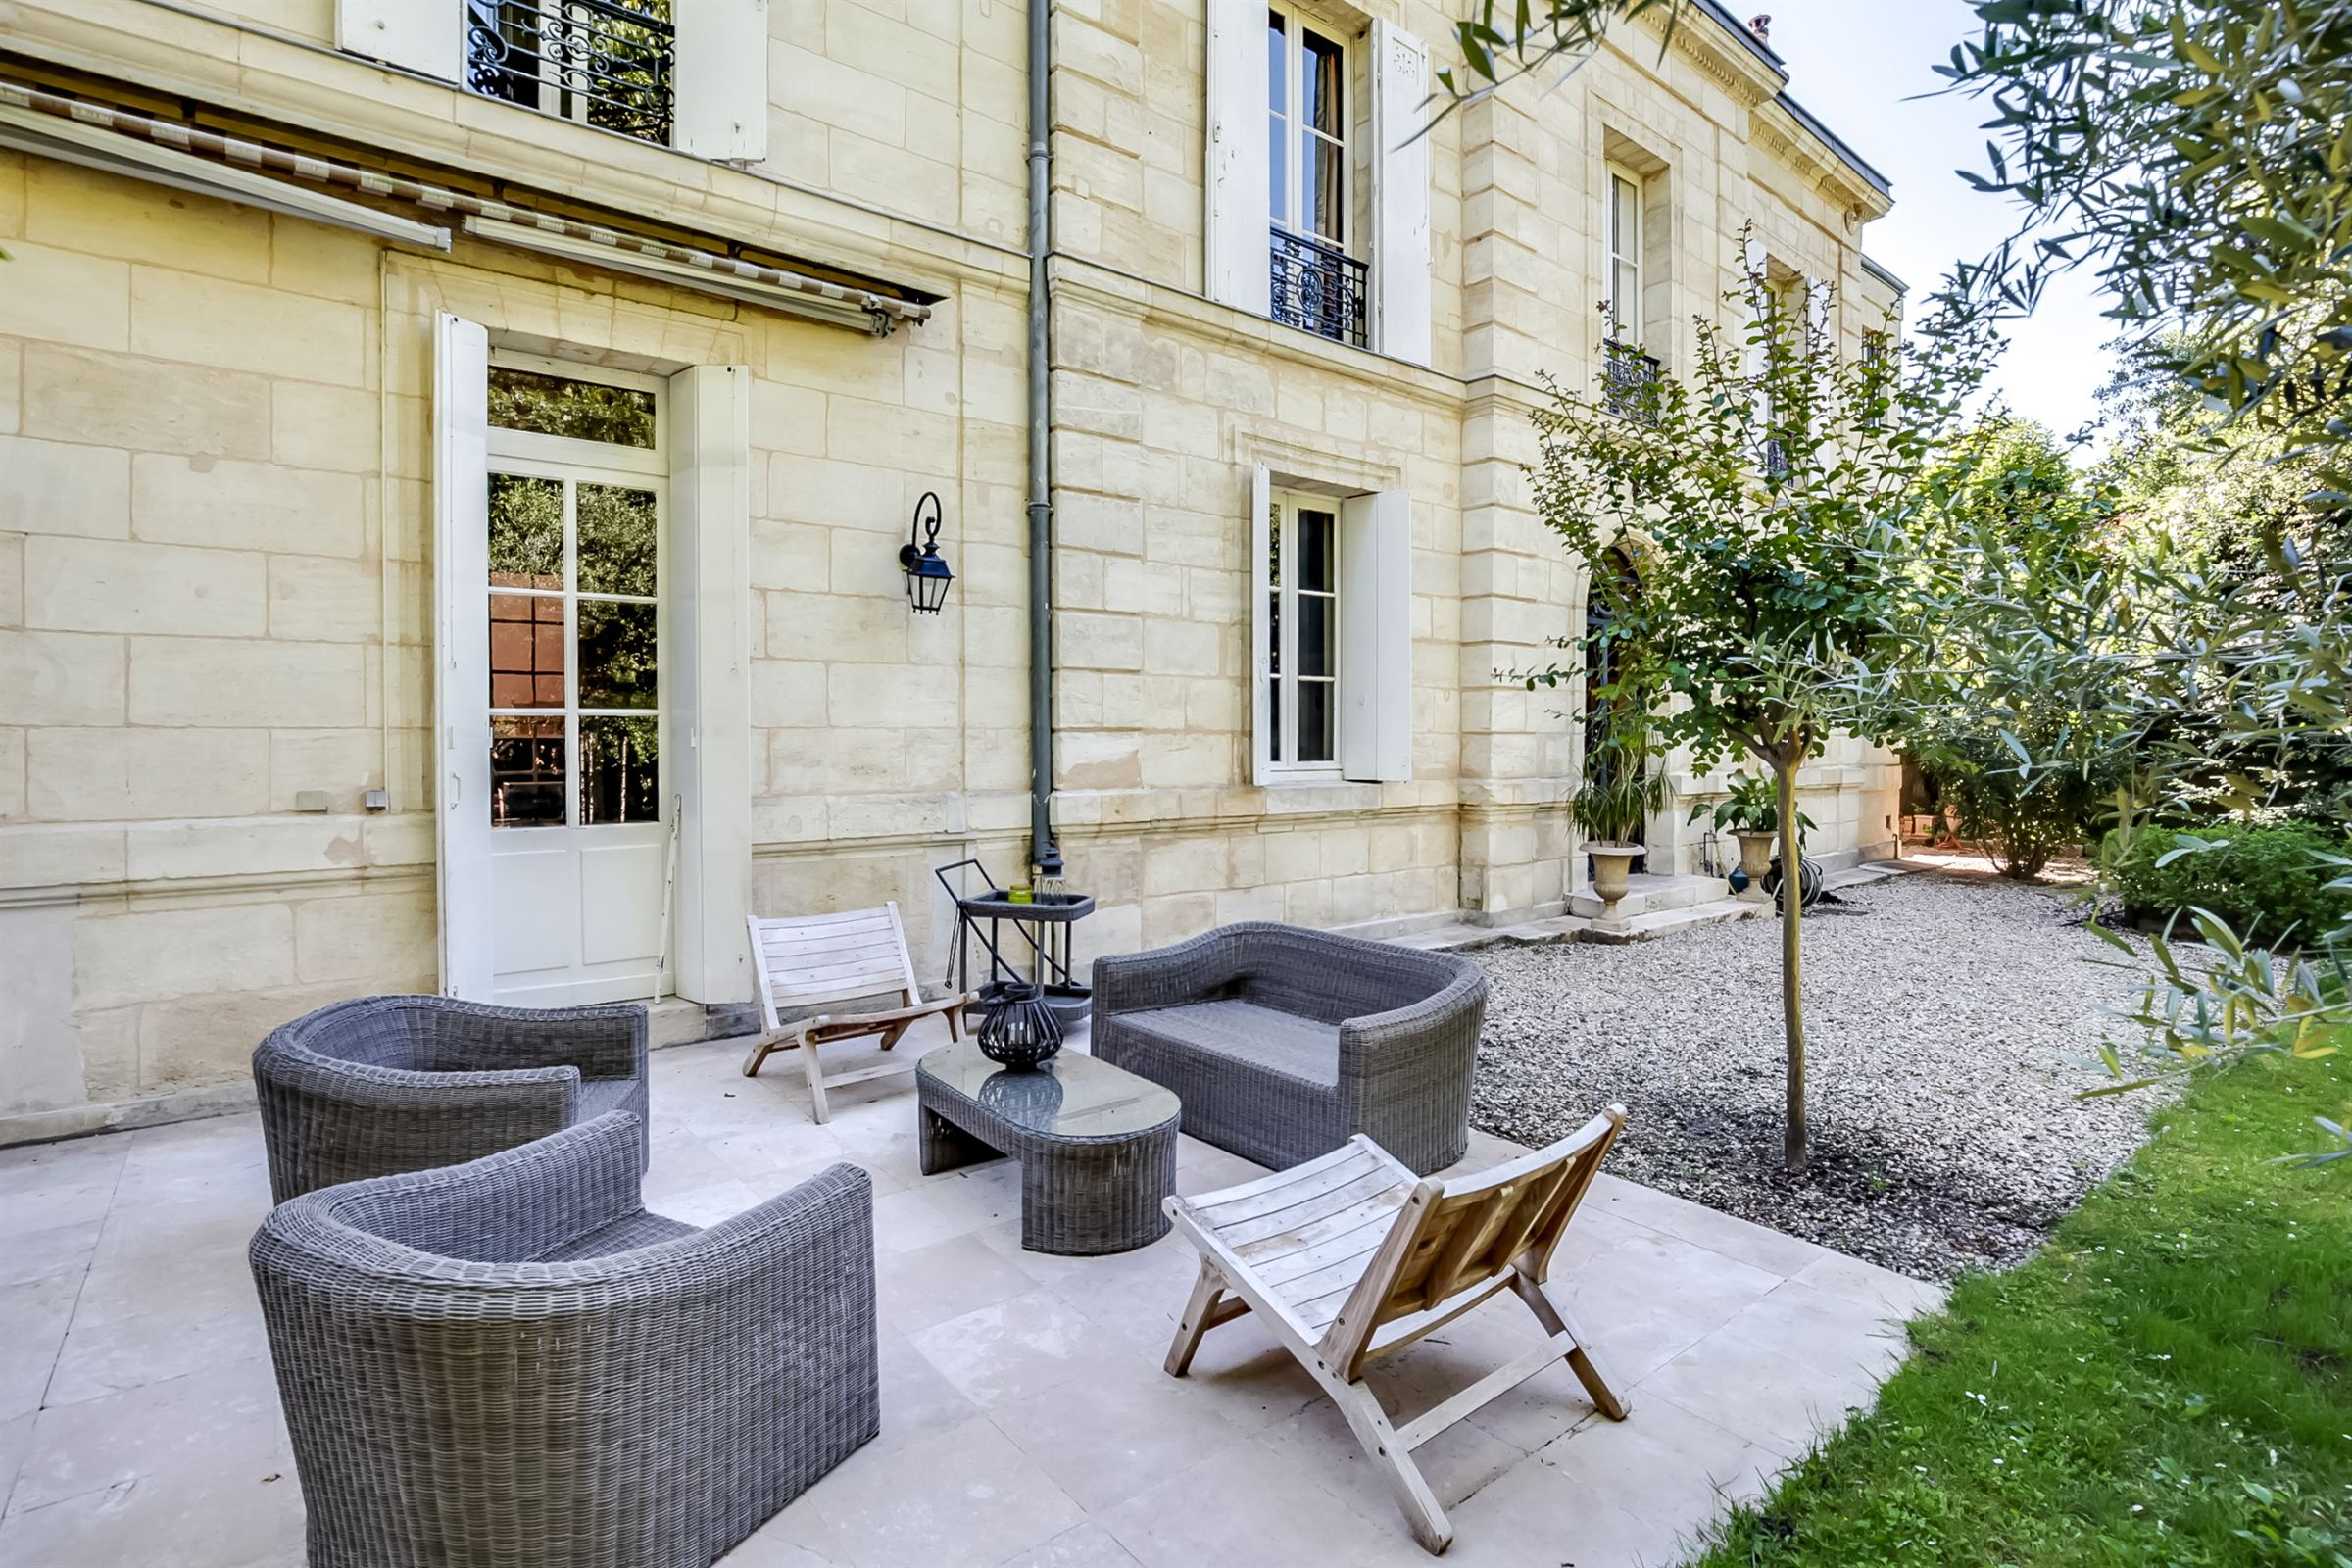 sales property at BORDEAUX BOUSCAT - SUPERB STONE MASTER HOUSE ON A 2300 M² GARDEN : RARE!